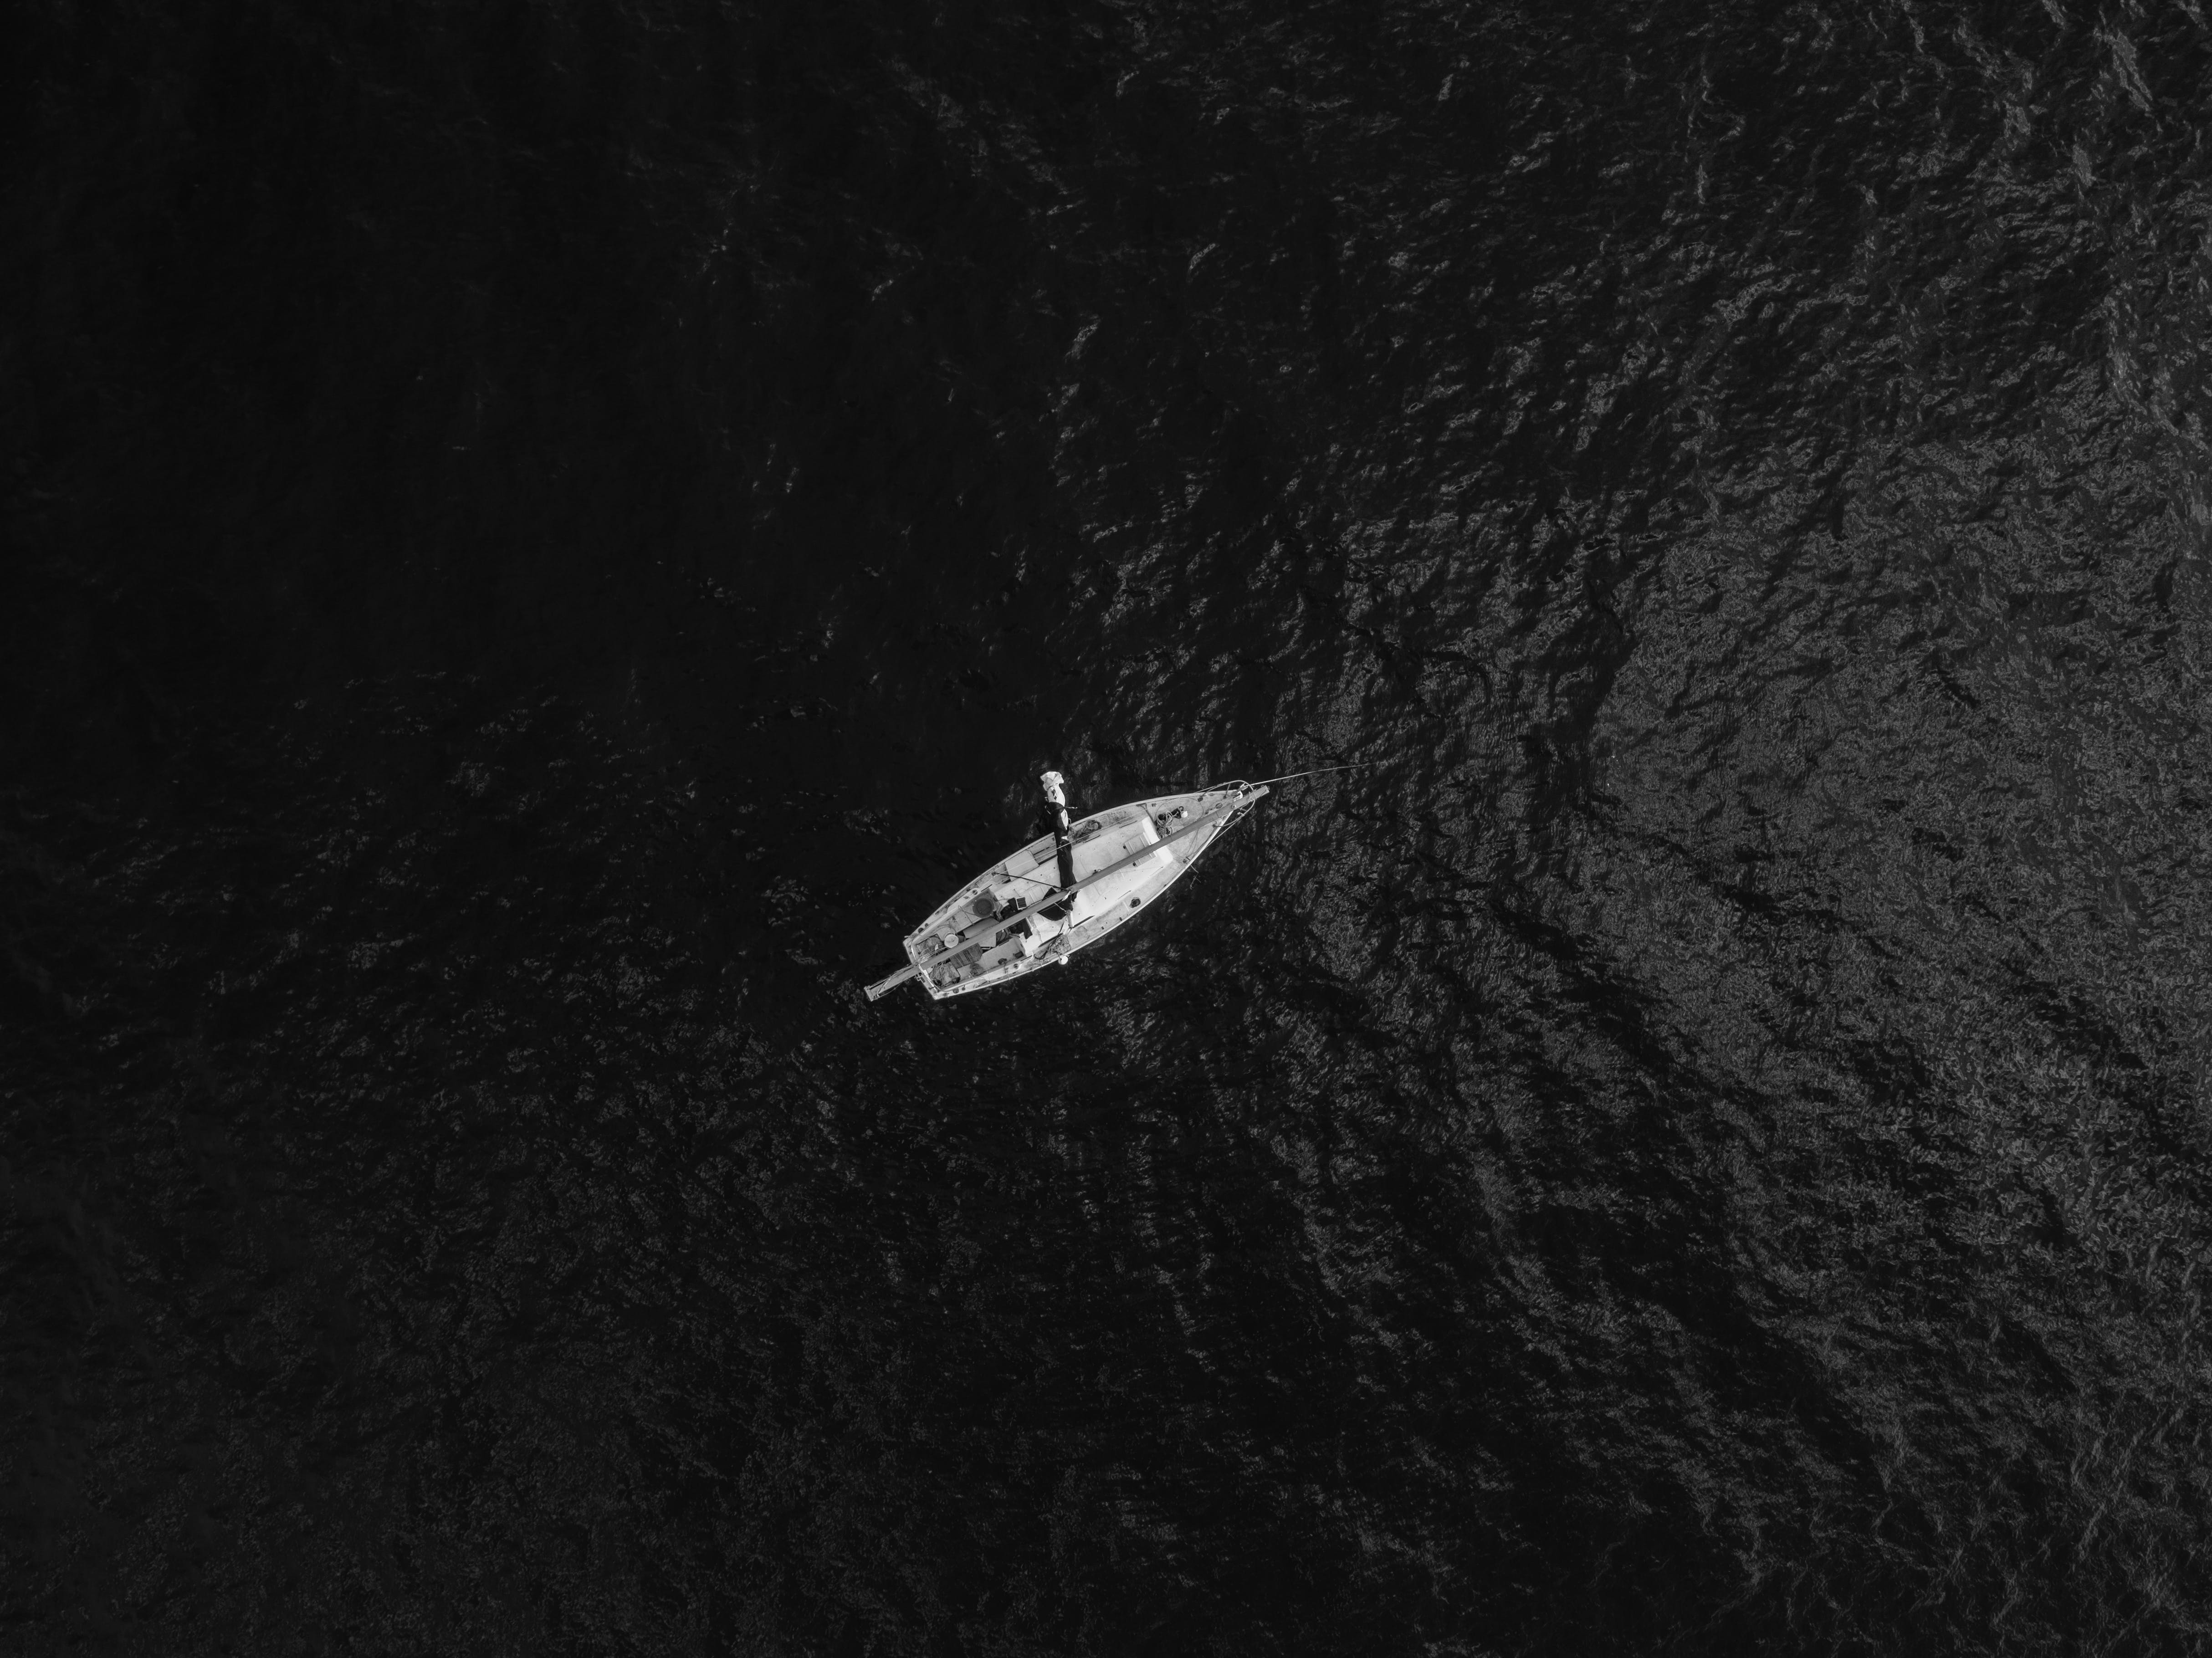 Aerial Photography Of Boat In The Middle Of Body Of Water